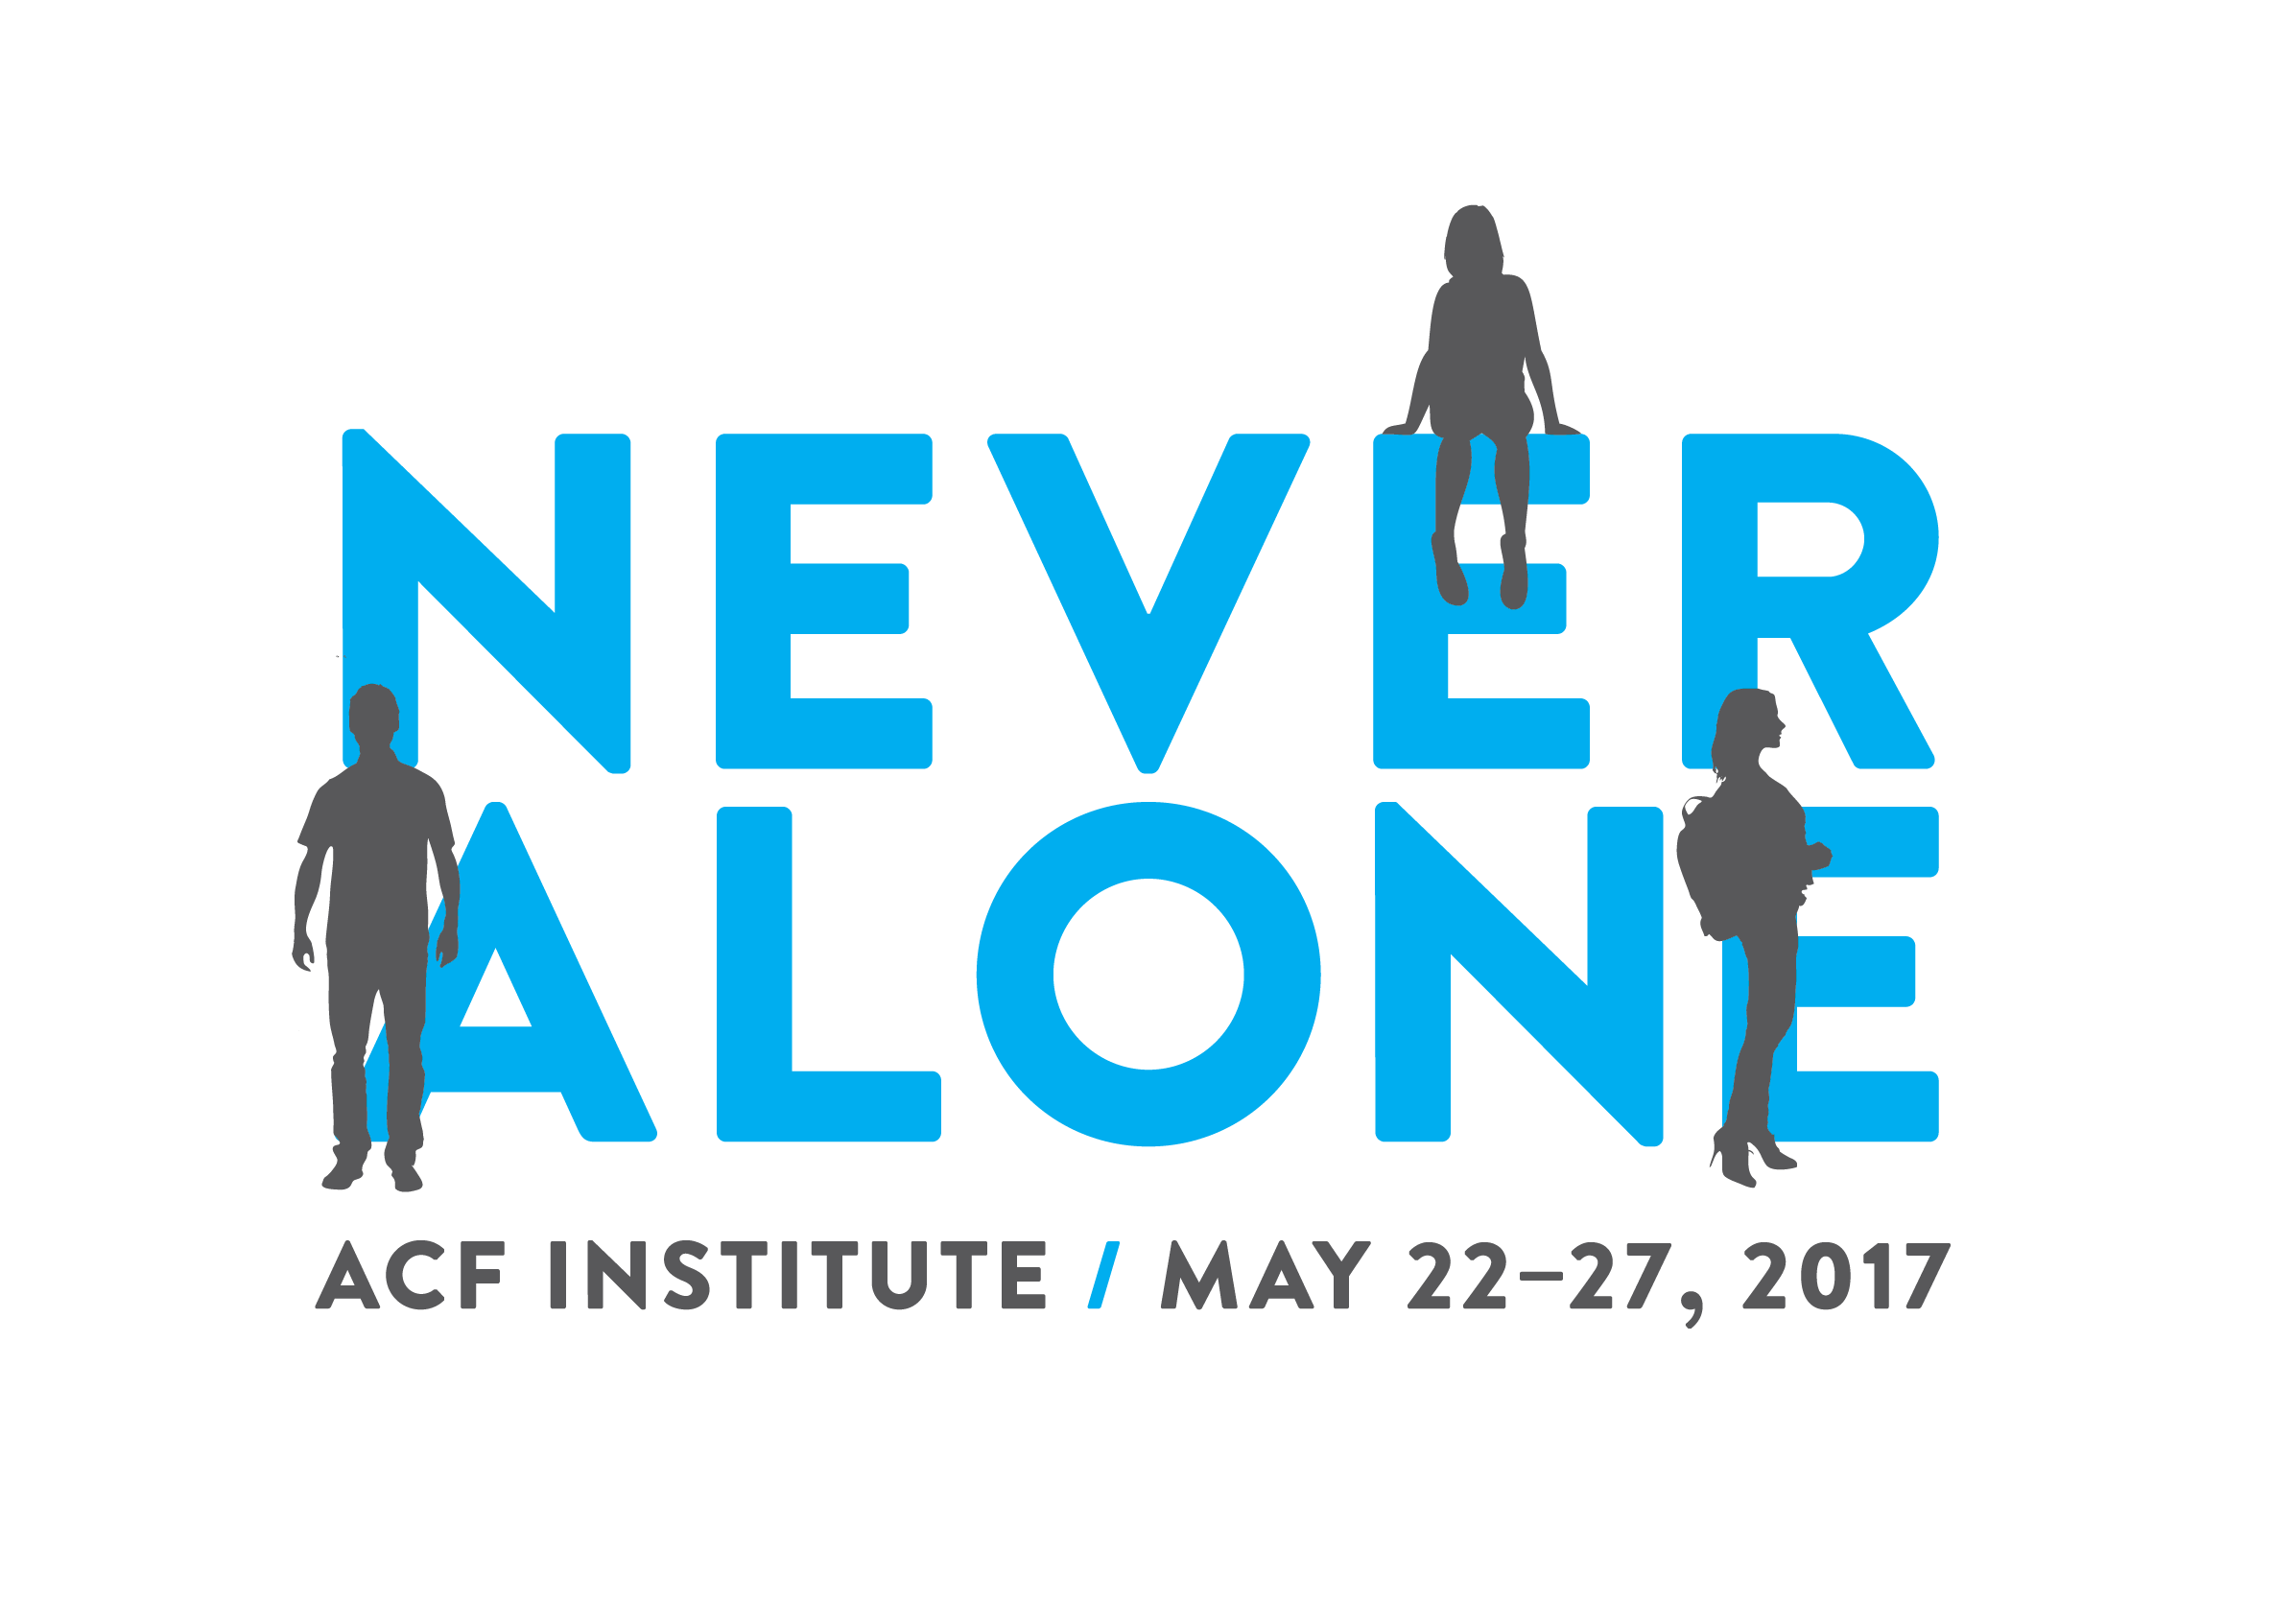 2017_ACF-Institute_Never-Alone_v1_Blue.png